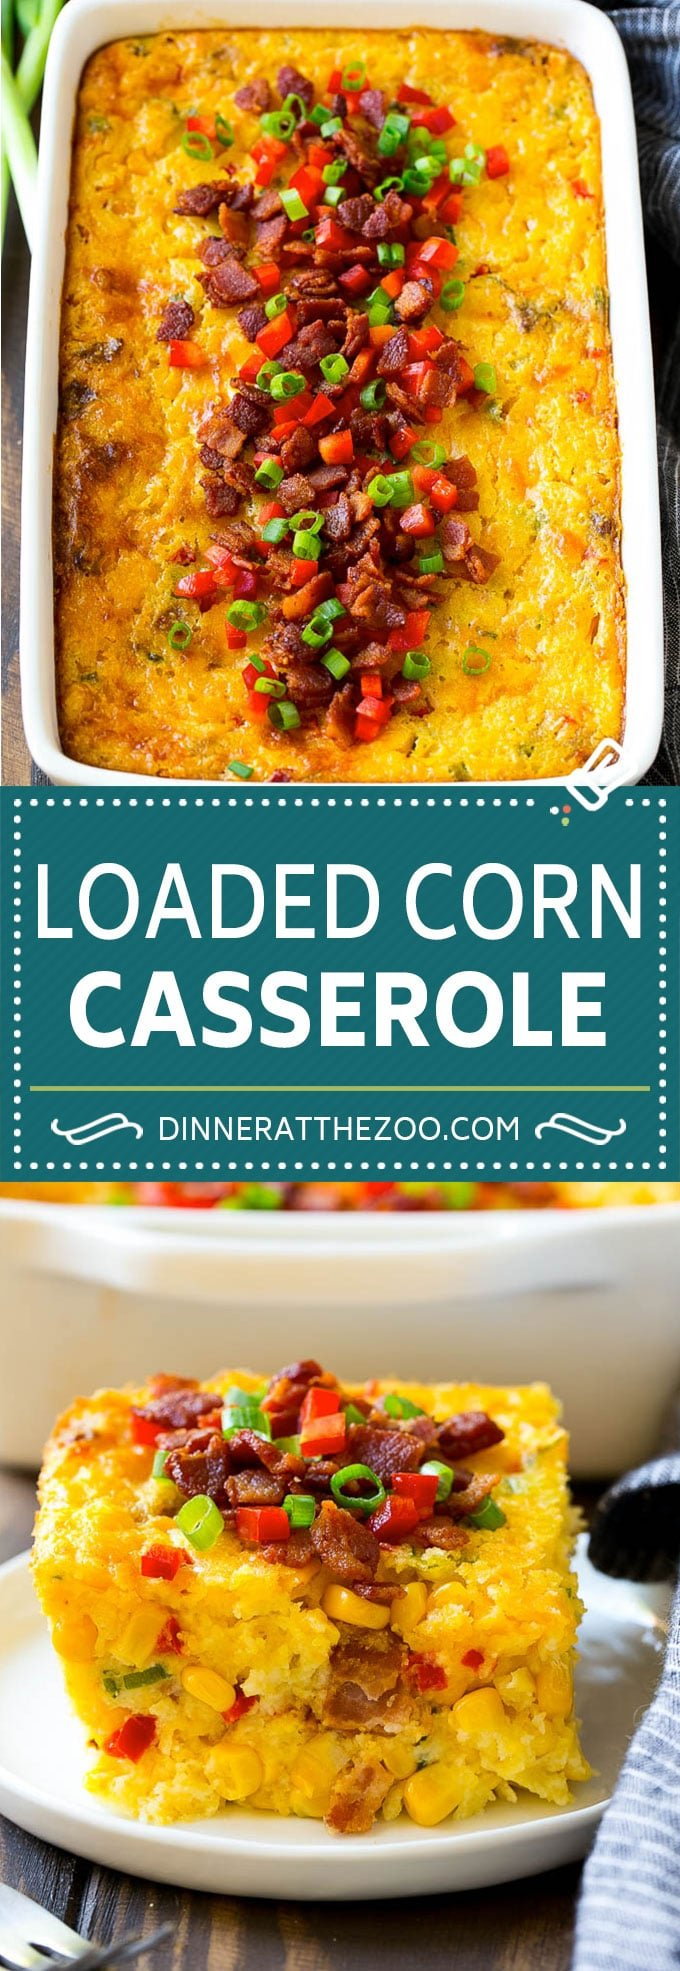 Loaded Corn Casserole Recipe | Easy Corn Casserole | Bacon Corn Casserole | Corn Pudding #corn #casserole #bacon #cheese #sidedish #thanksgiving #dinner #dinneratthezoo